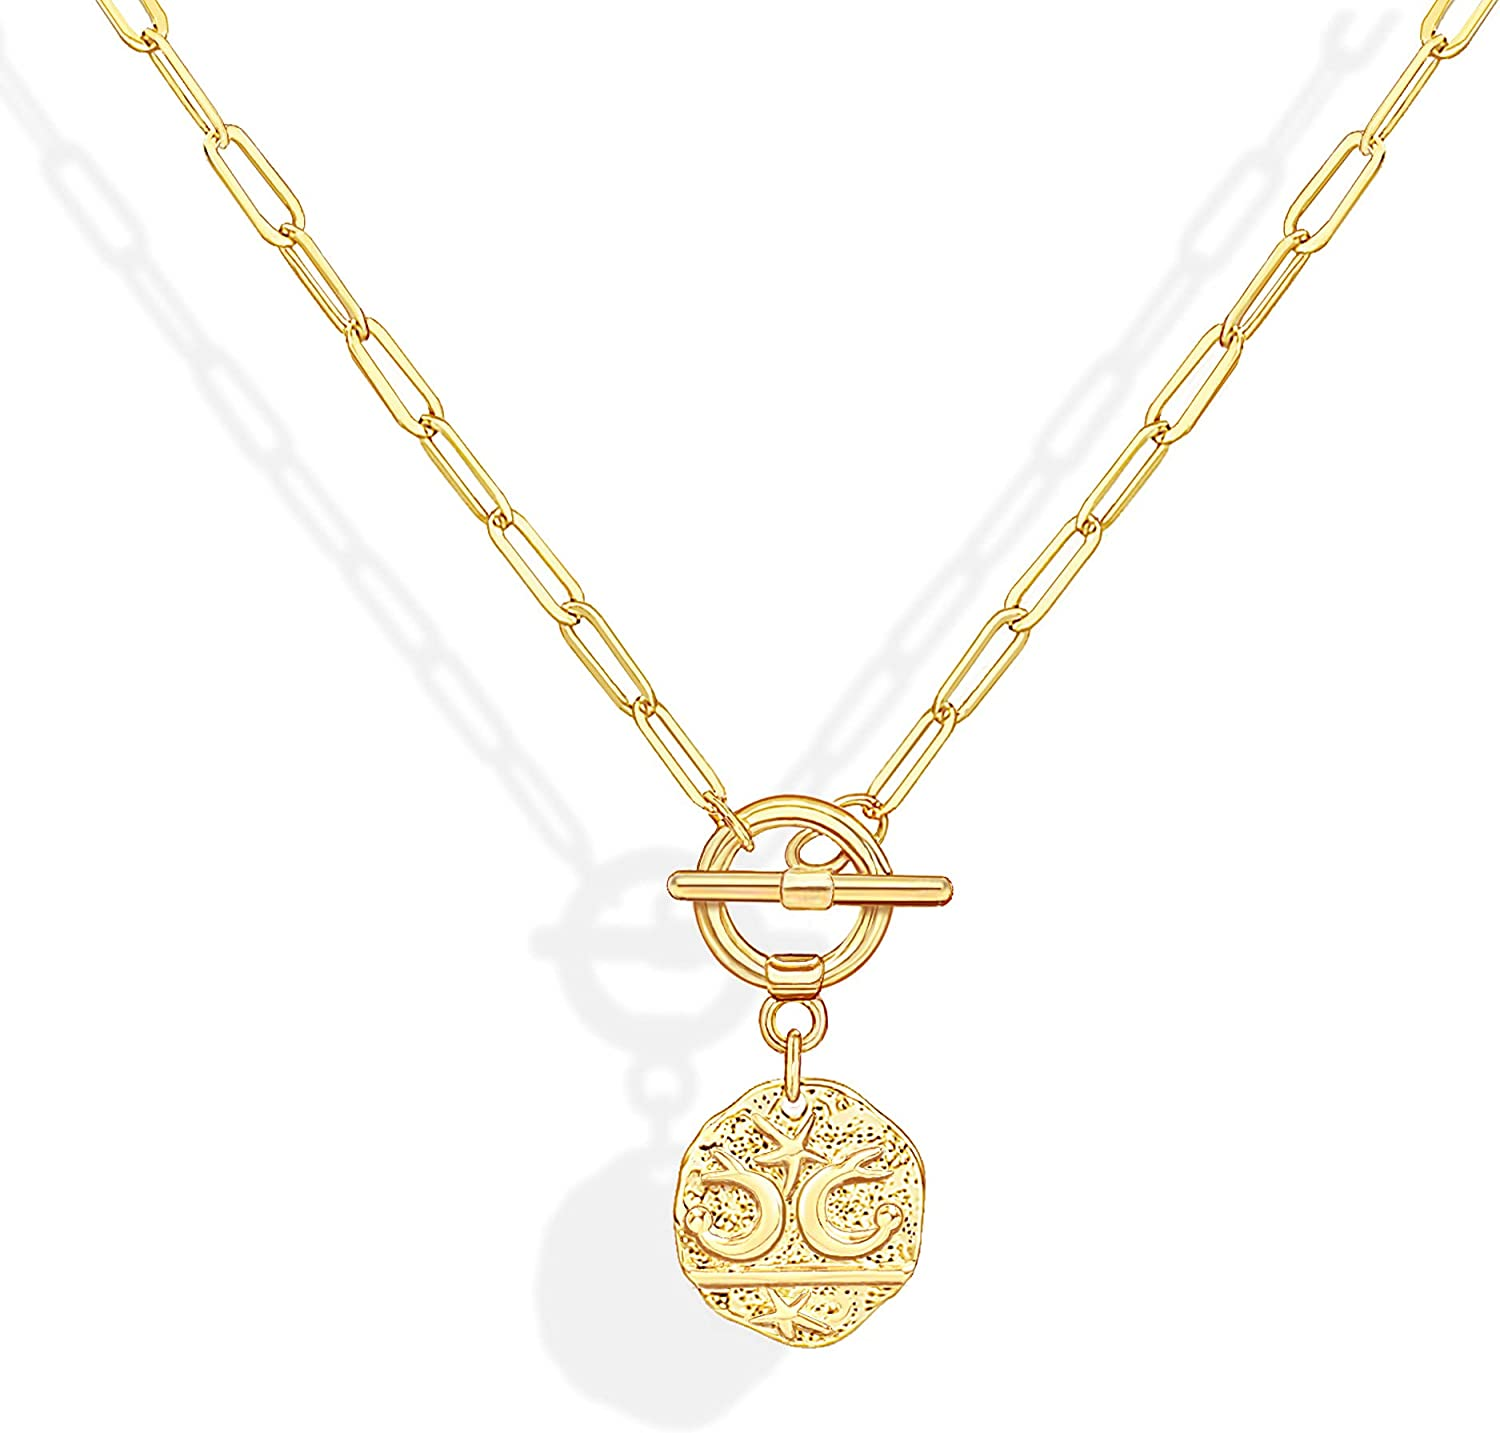 JSJOY Gold Layered Necklace for Women 14K Gold Plated Layered Coin Necklaces Adjustable Multilayer Choker Necklaces for Women Girls